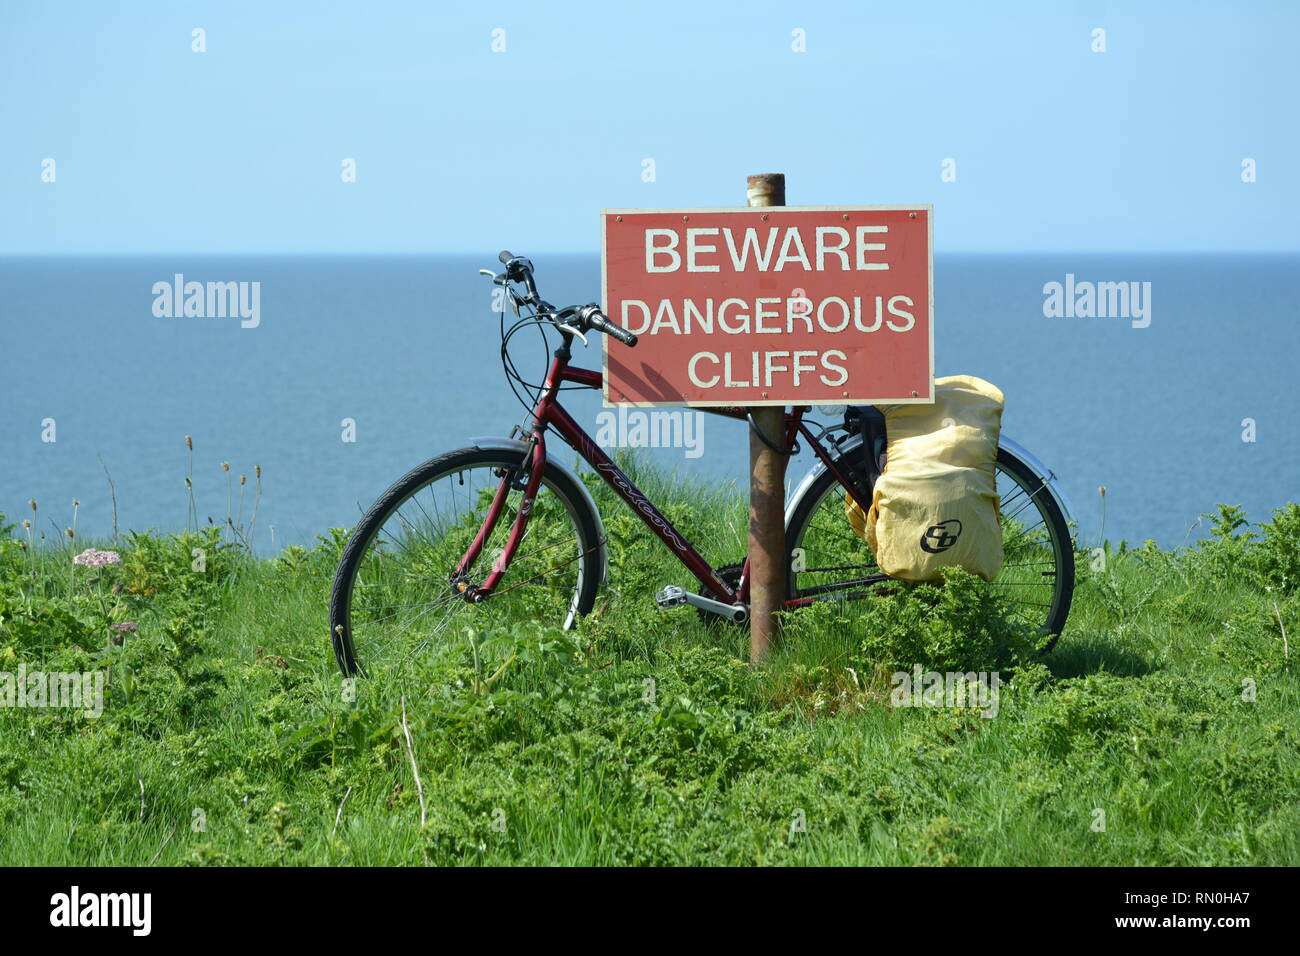 Dangerous cliffs warning sign with a bike leant against it. Filey North Yorkshire. - Stock Image